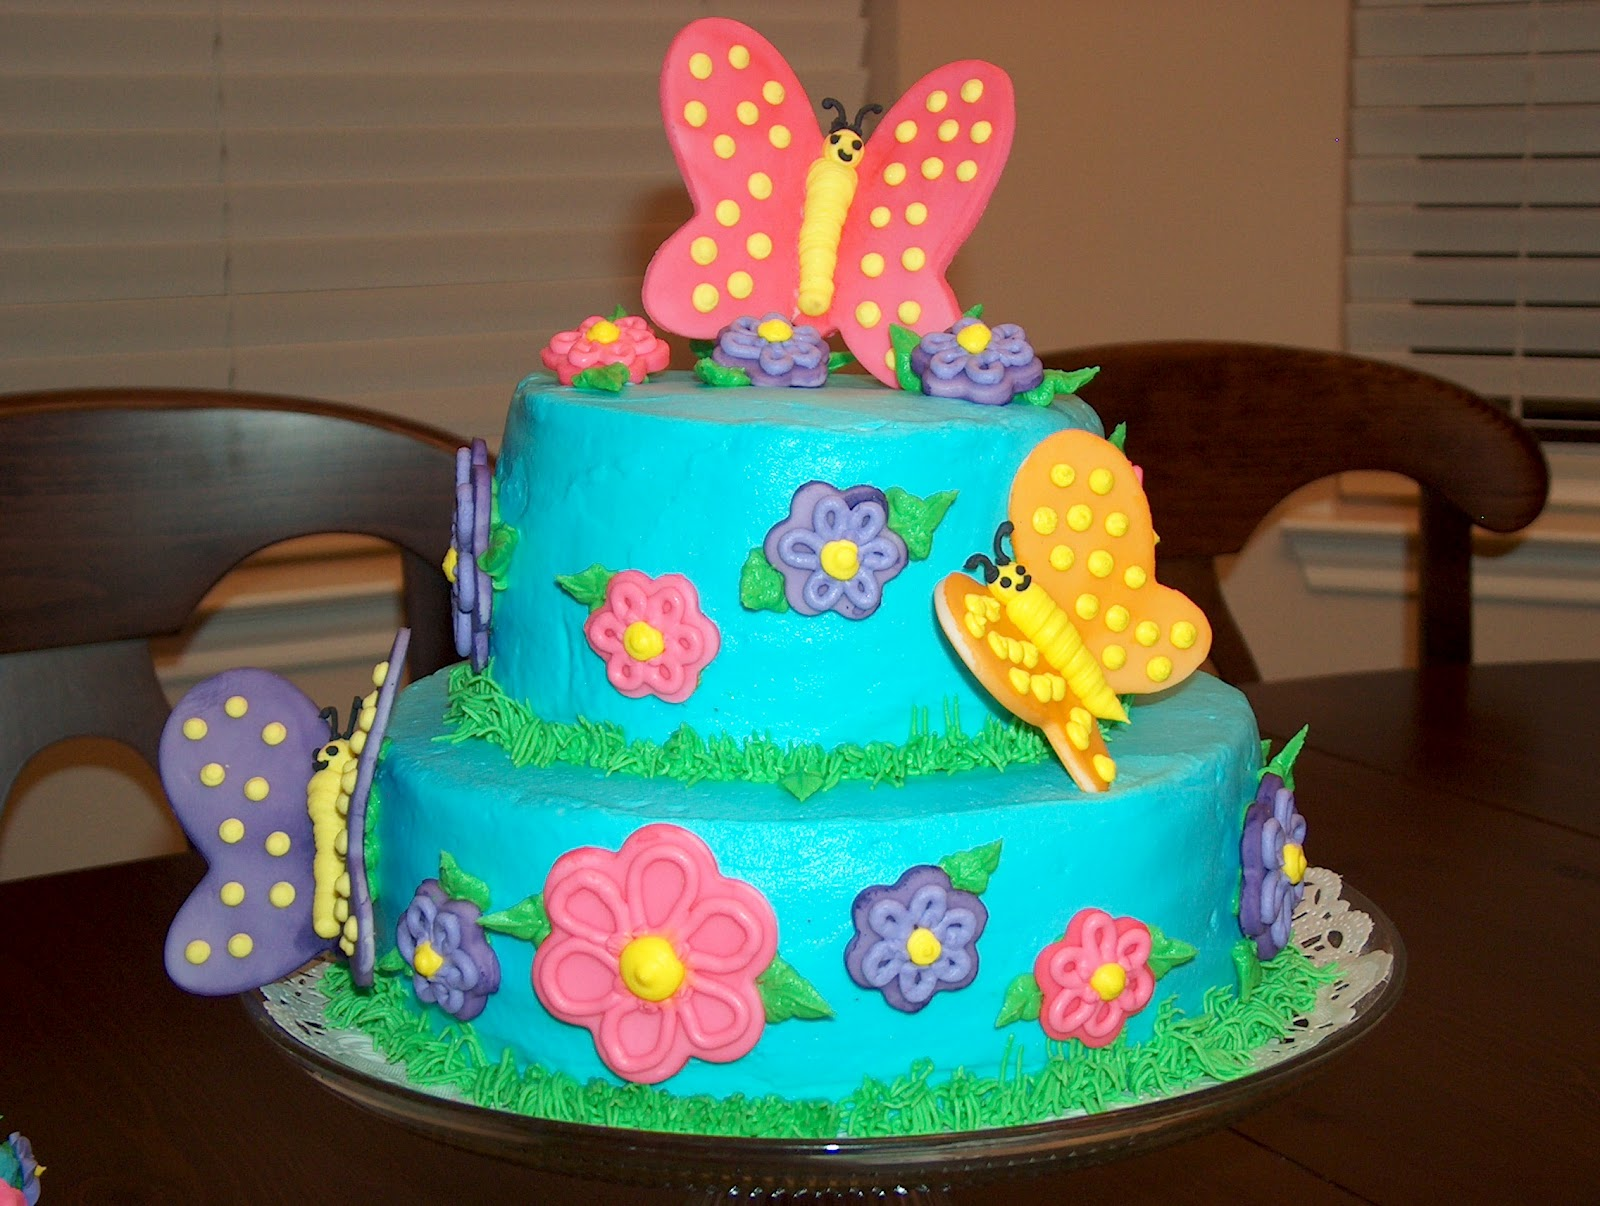 Cake Images Butterfly : Themed Cakes, Birthday Cakes, Wedding Cakes: ButterFly ...